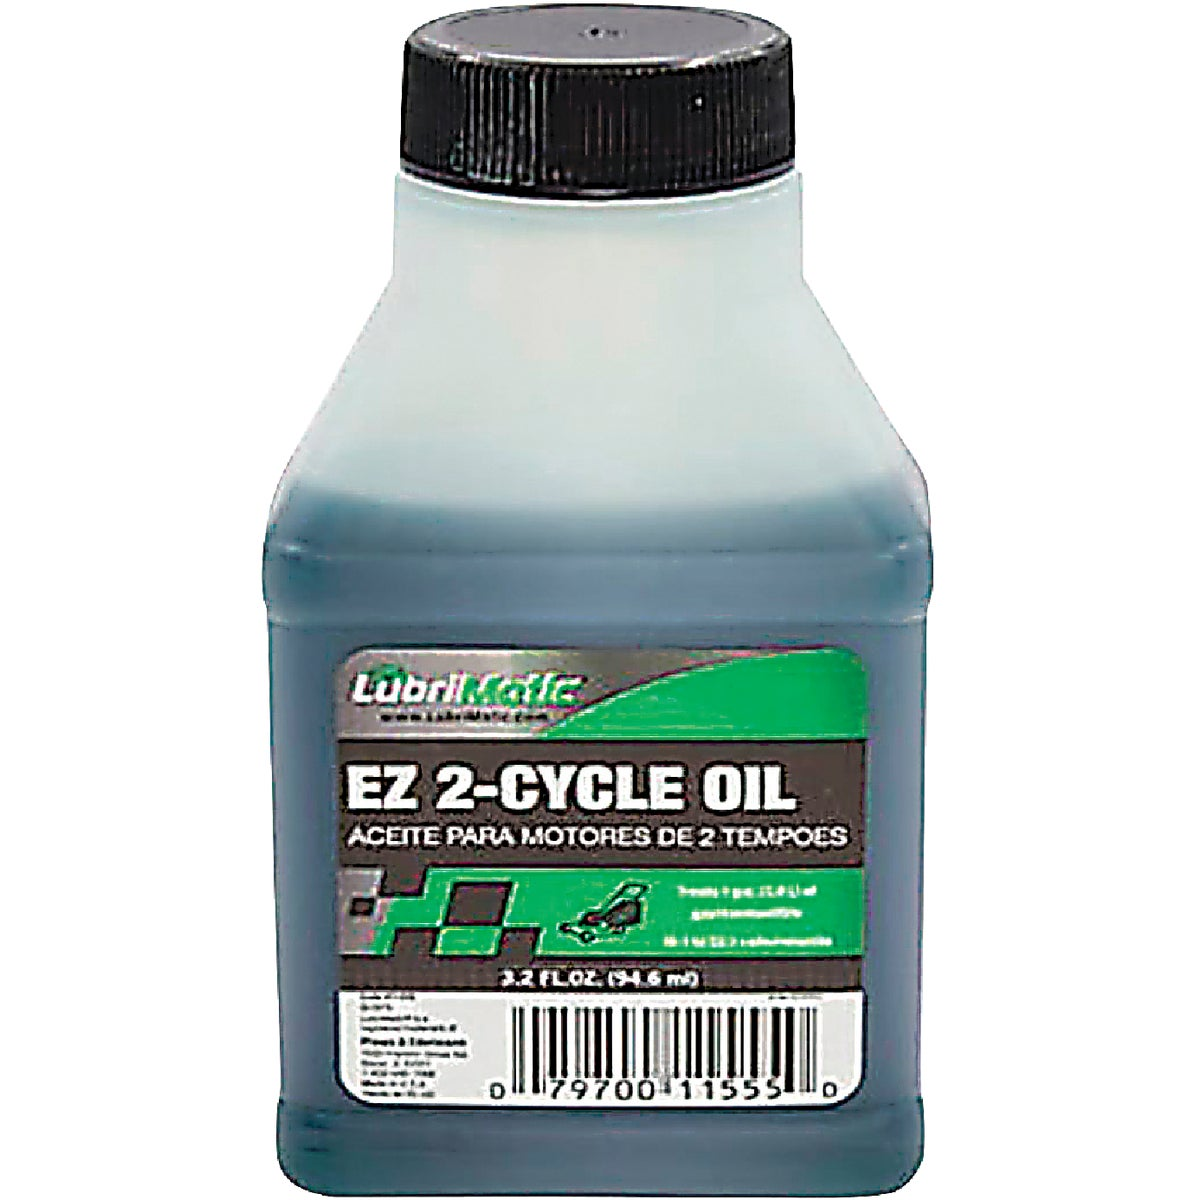 3.2OZ 2-CYCLE OIL